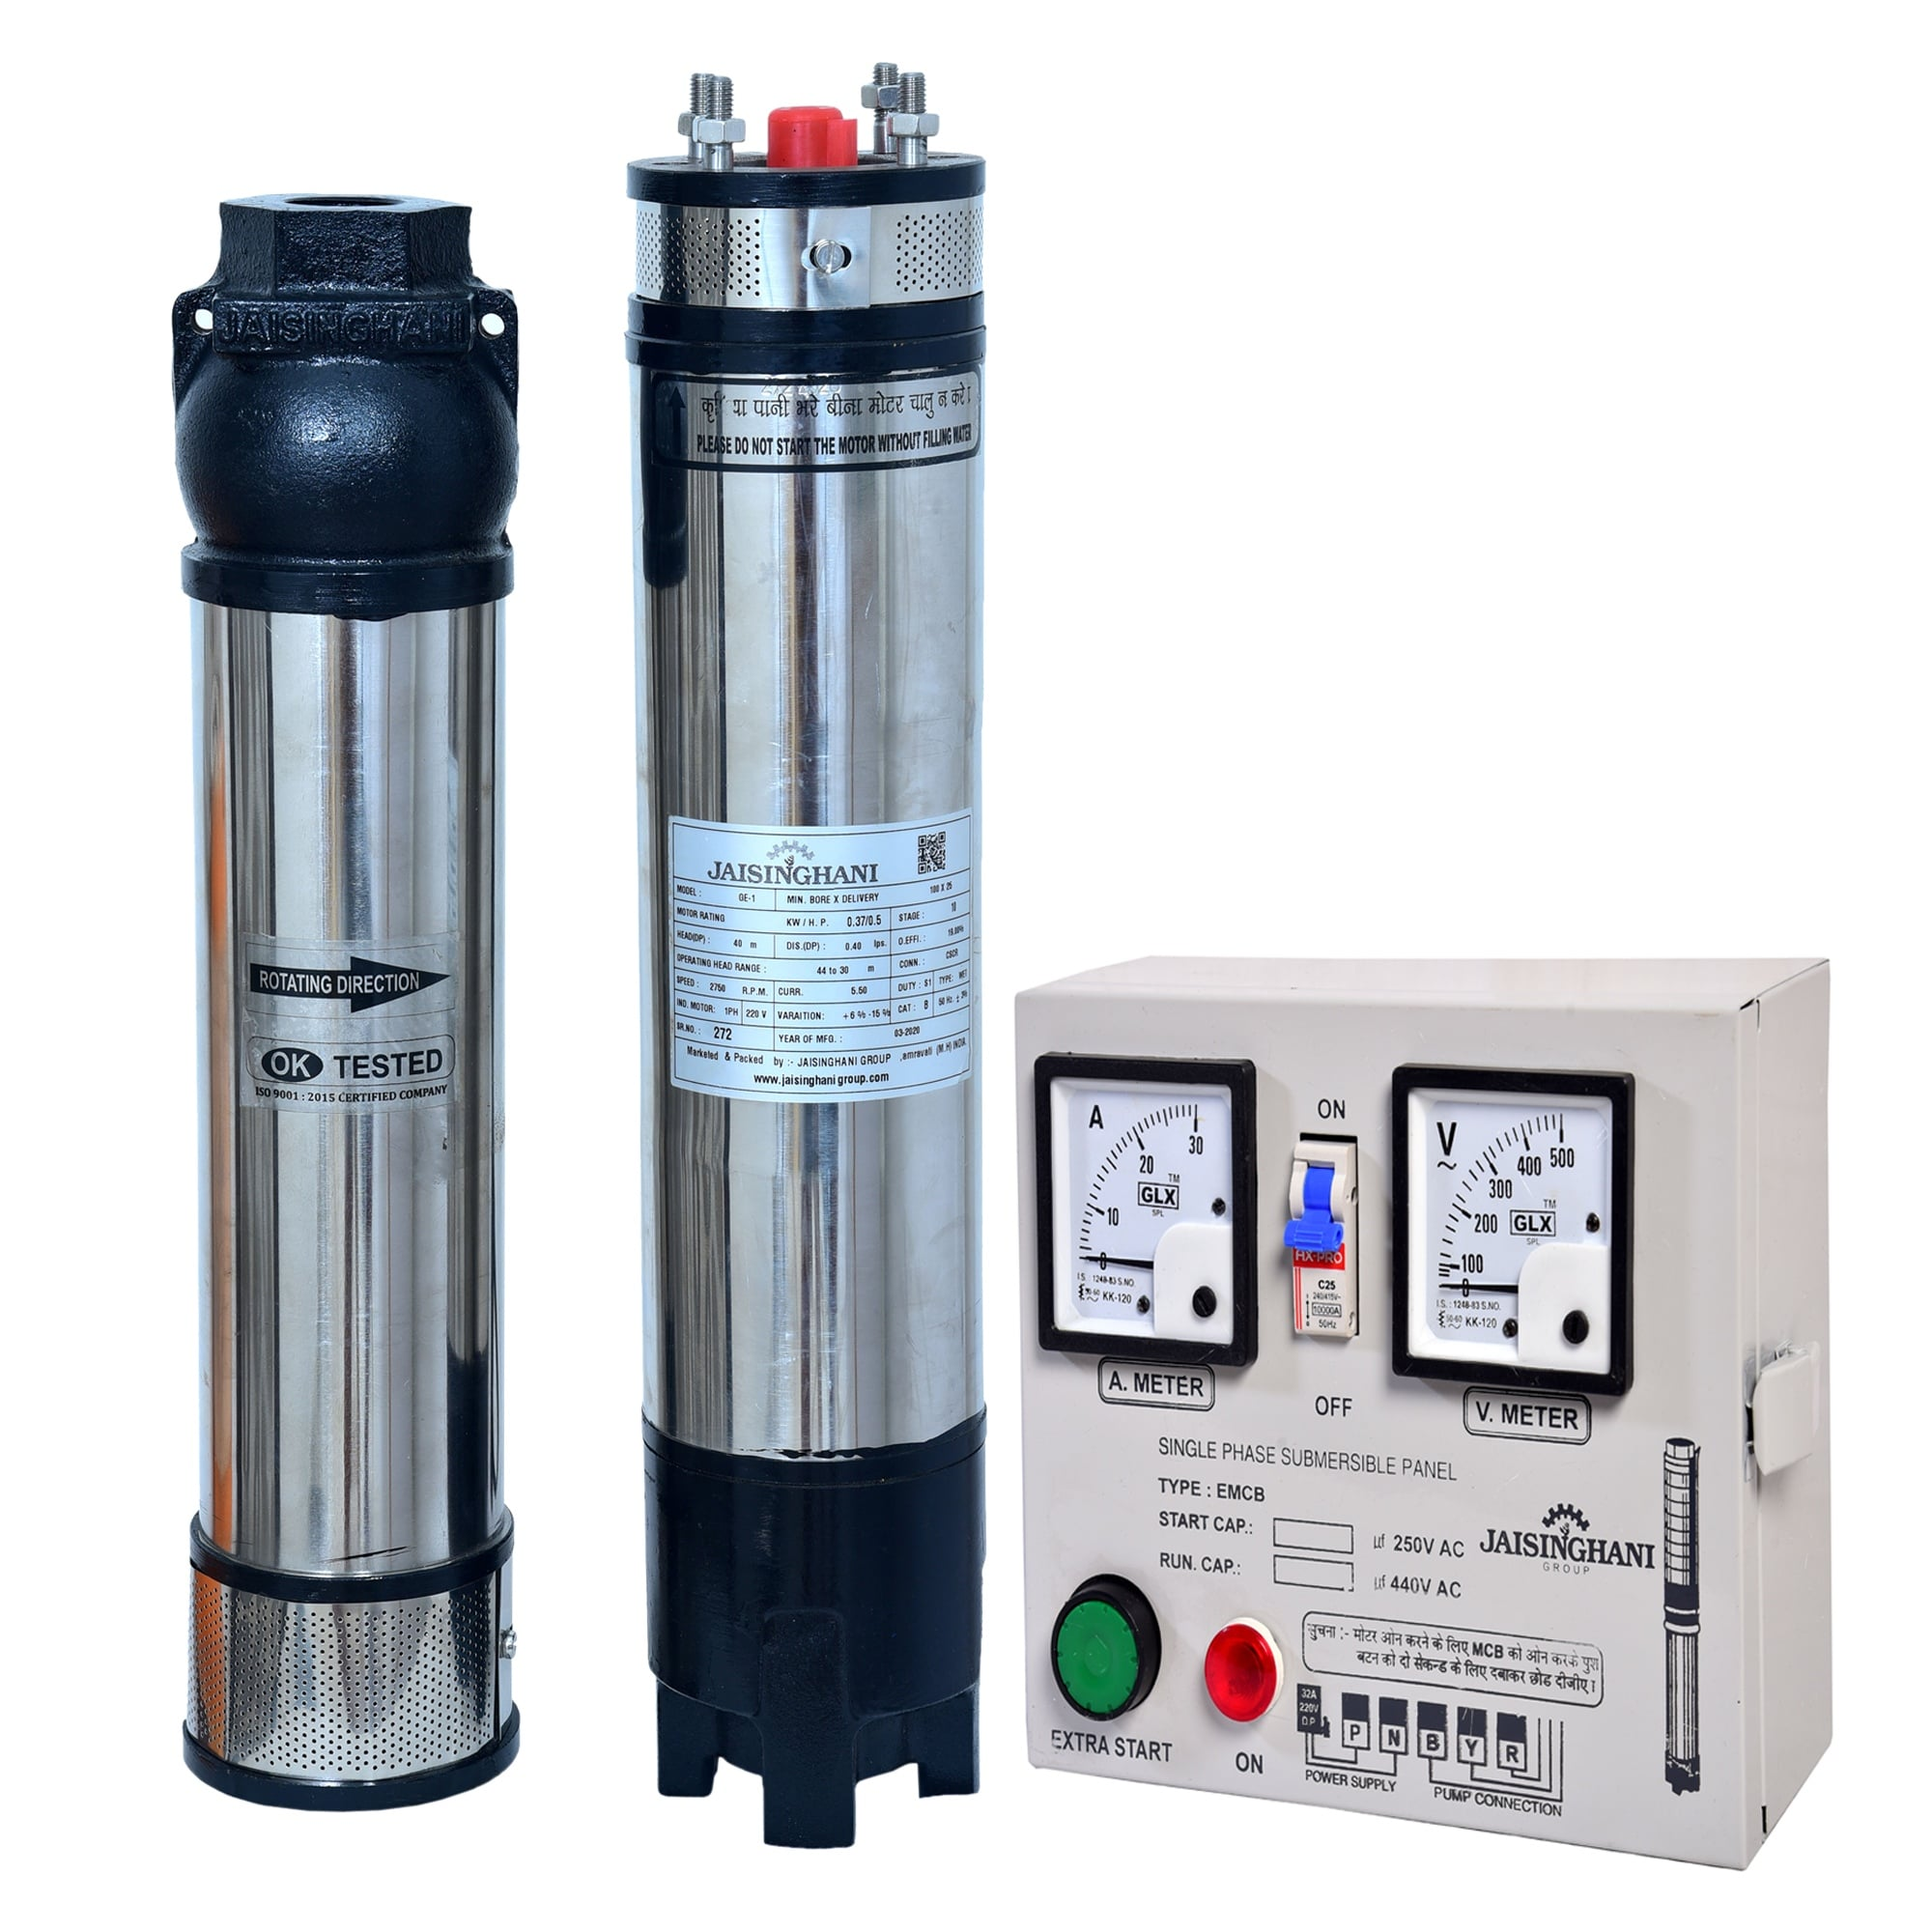 0.5hp submersible water pump with control panel